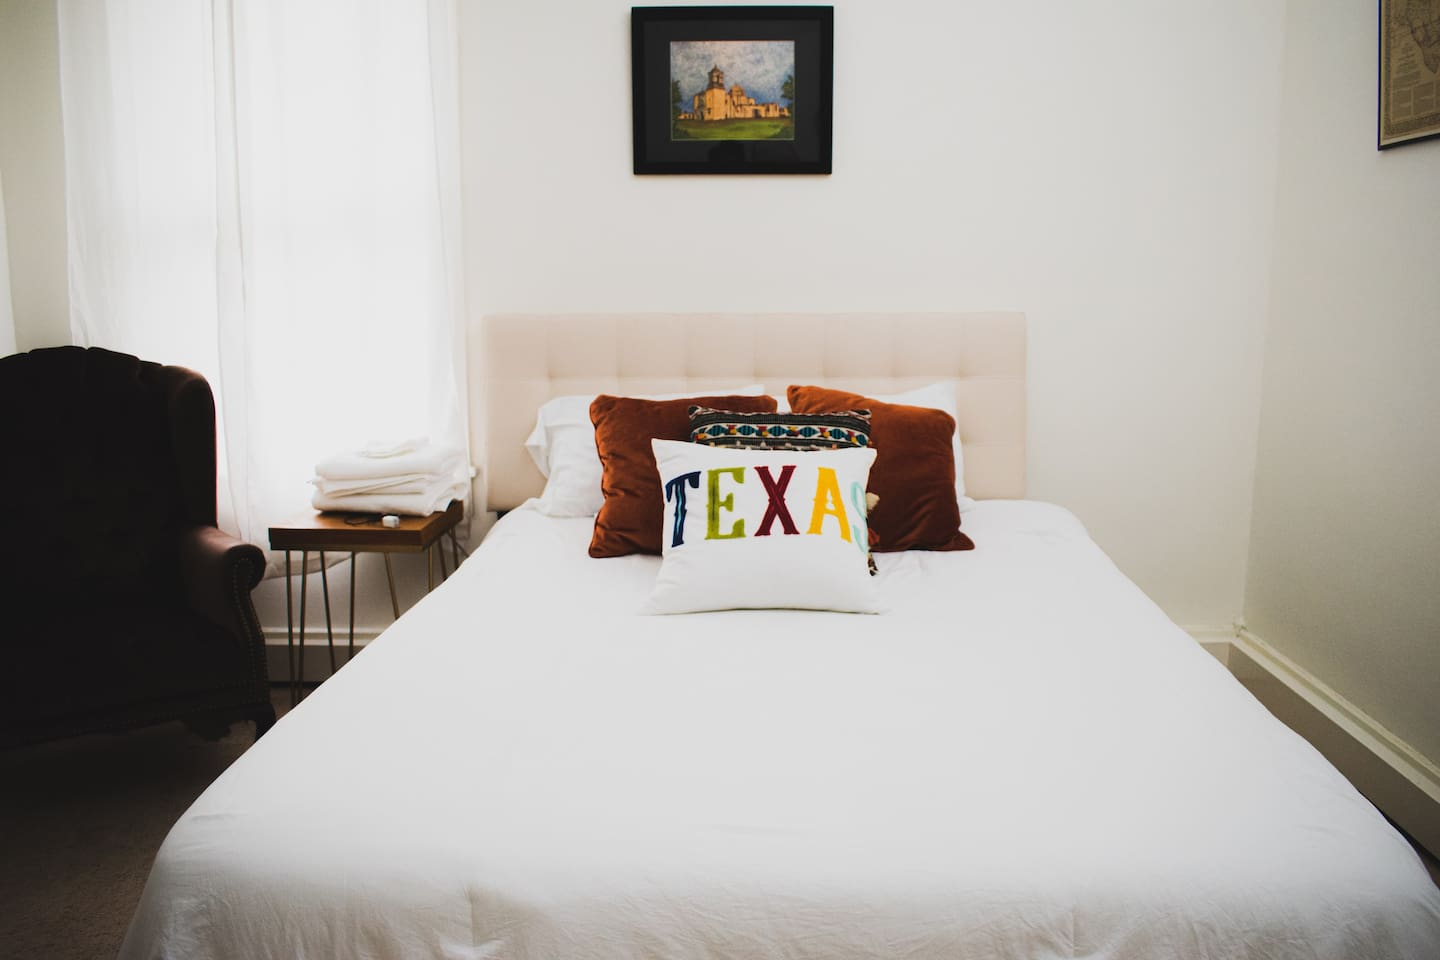 Enjoy a Queen Size Bed with Comfy Sheets and Linens.